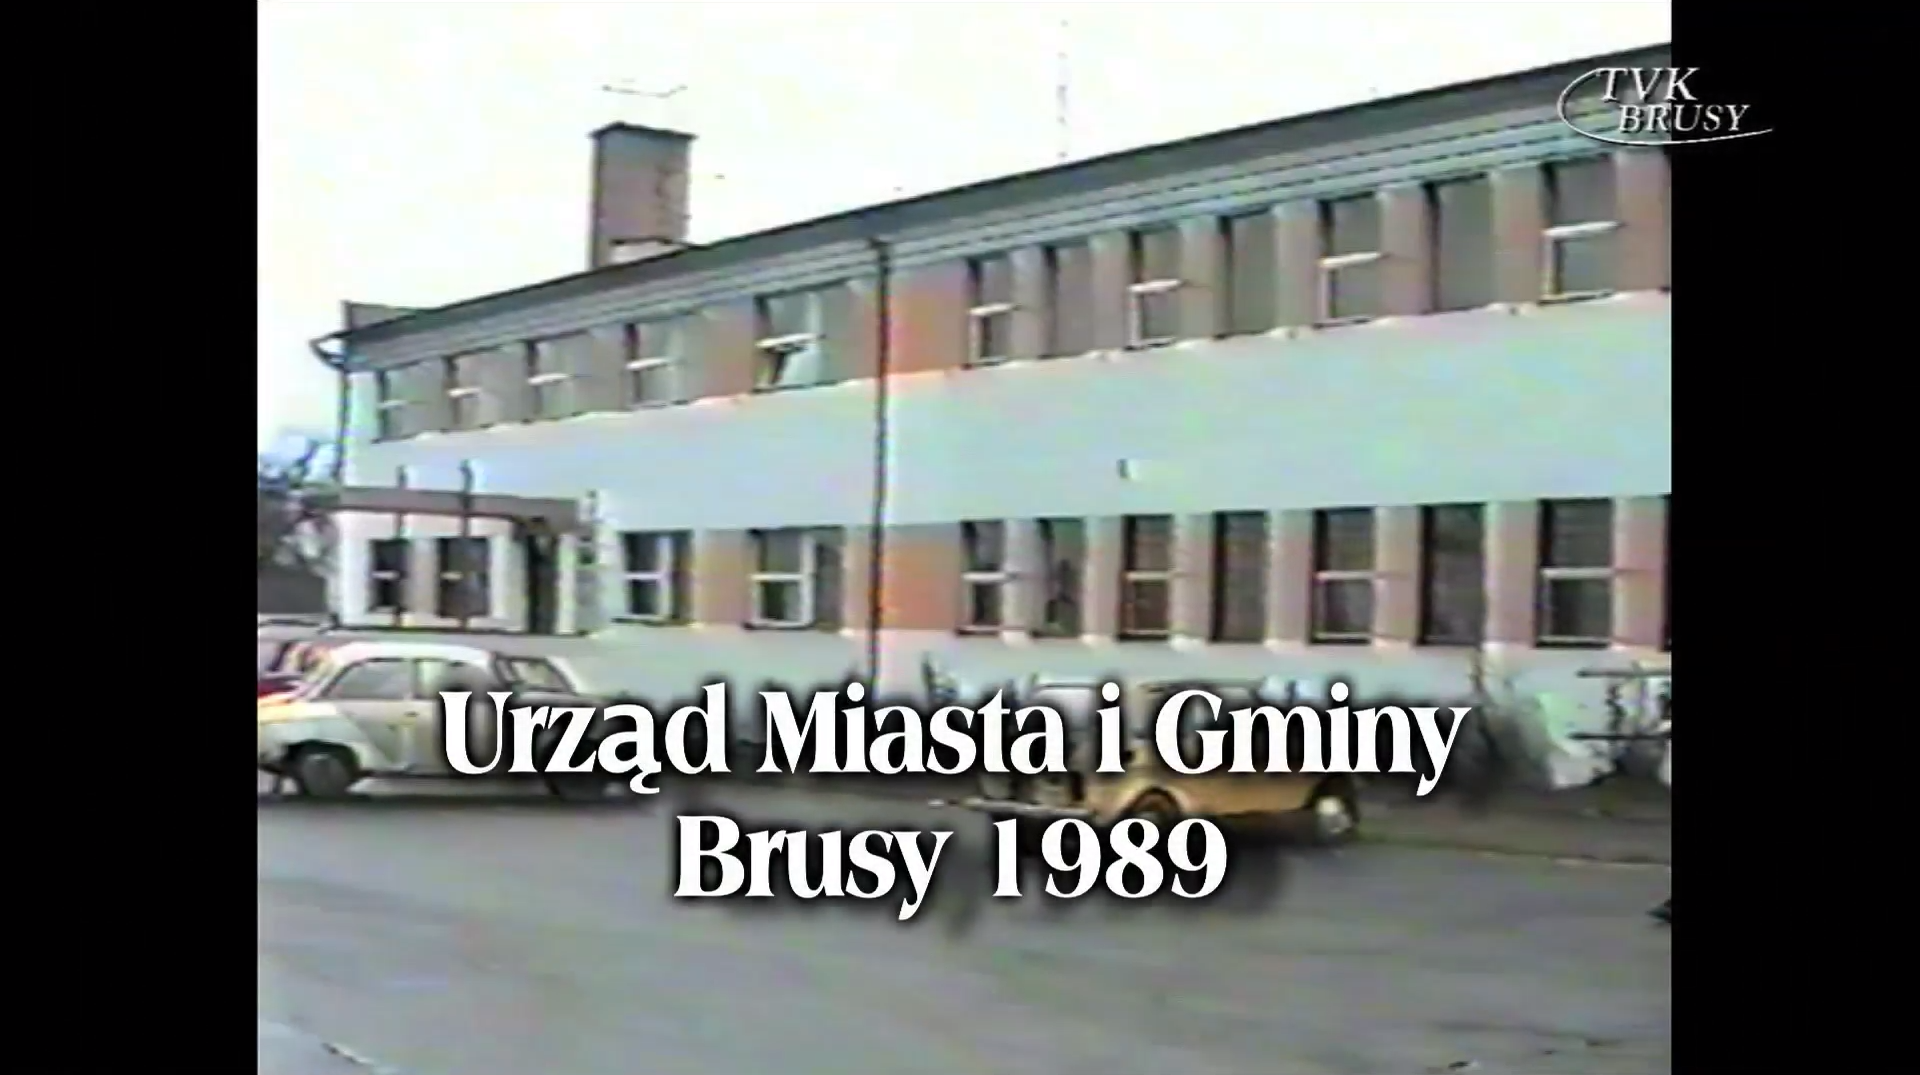 Brusy_1989.png